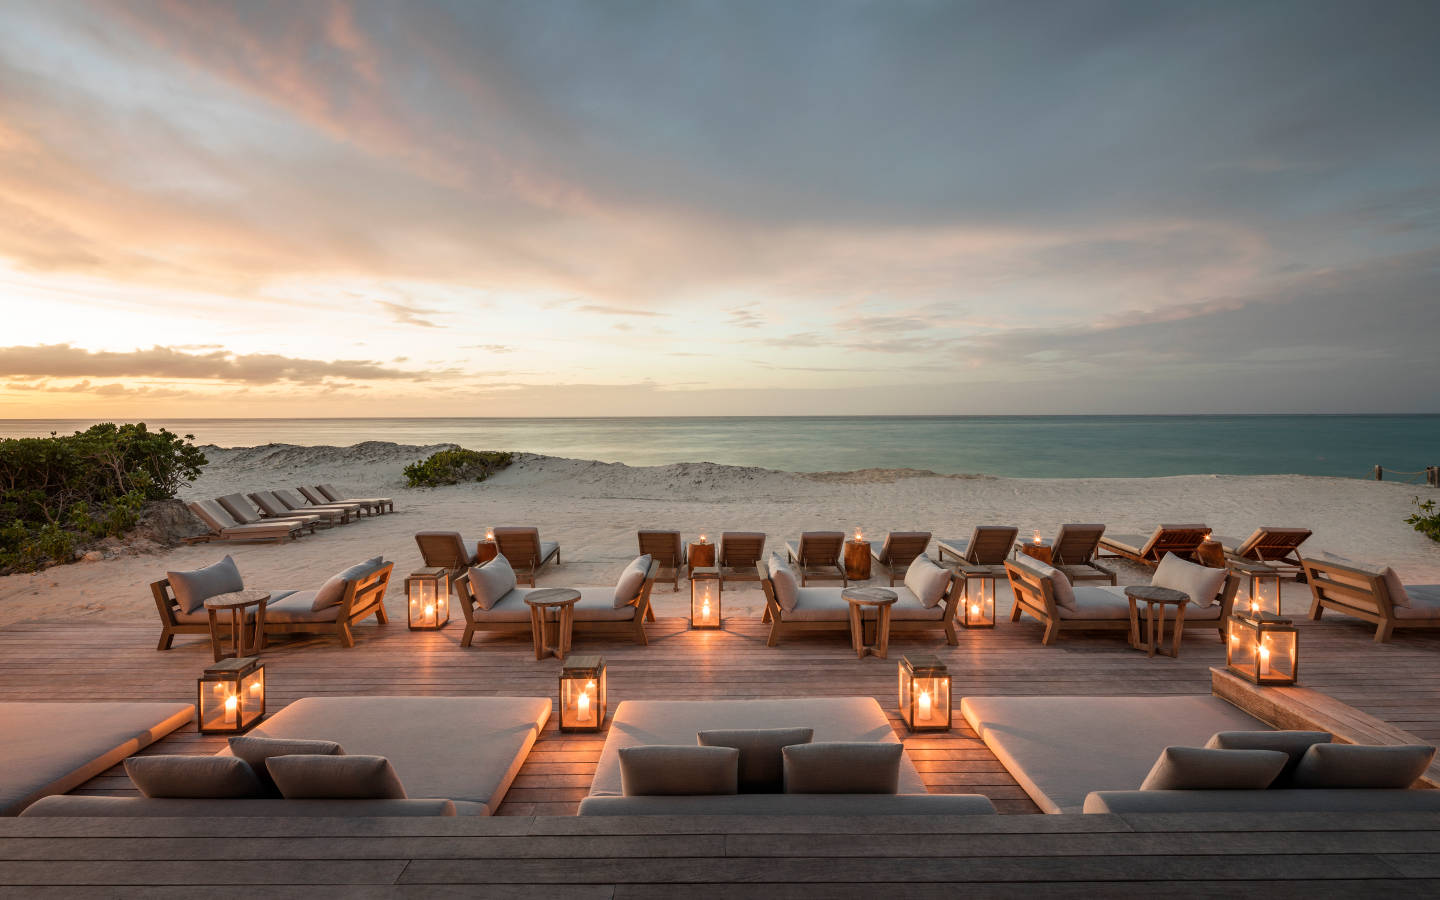 Parrot Cay - evening view of the beach and daybeds